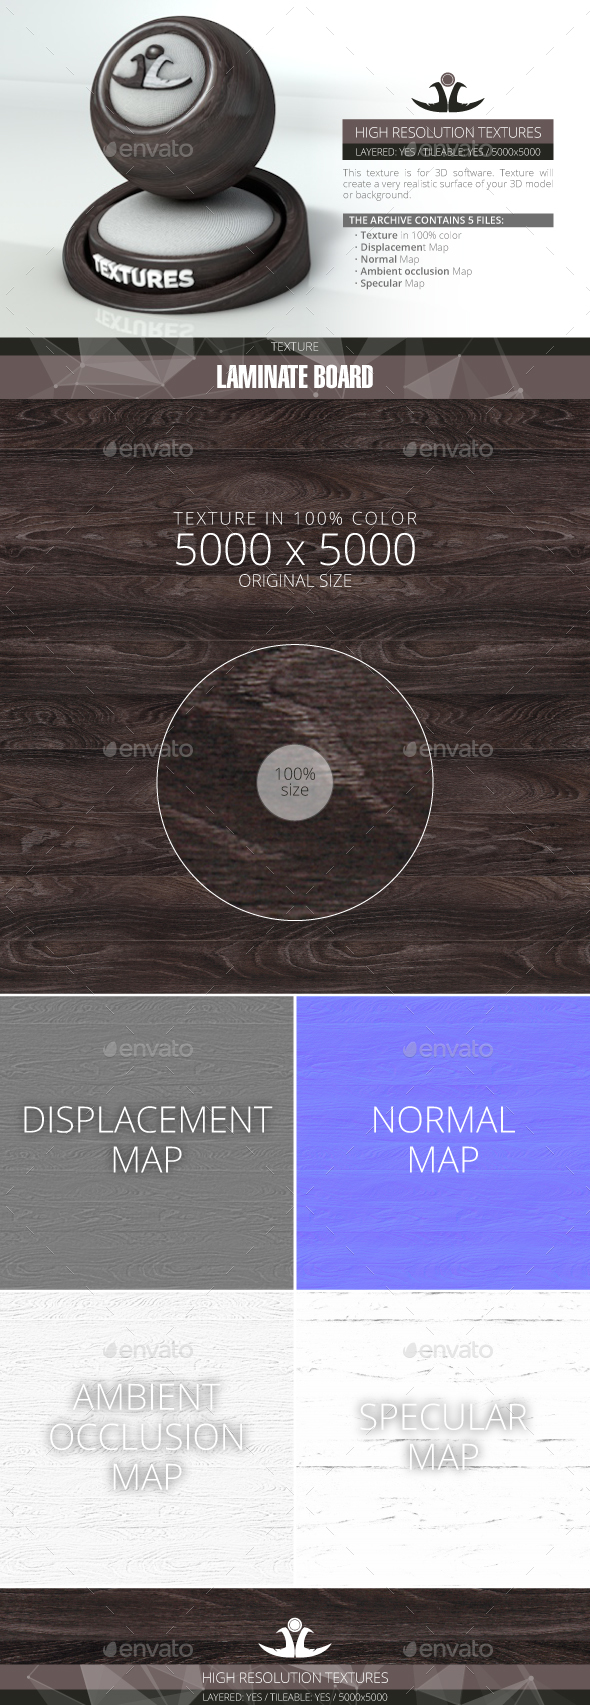 Laminate Board 8 - 3DOcean Item for Sale